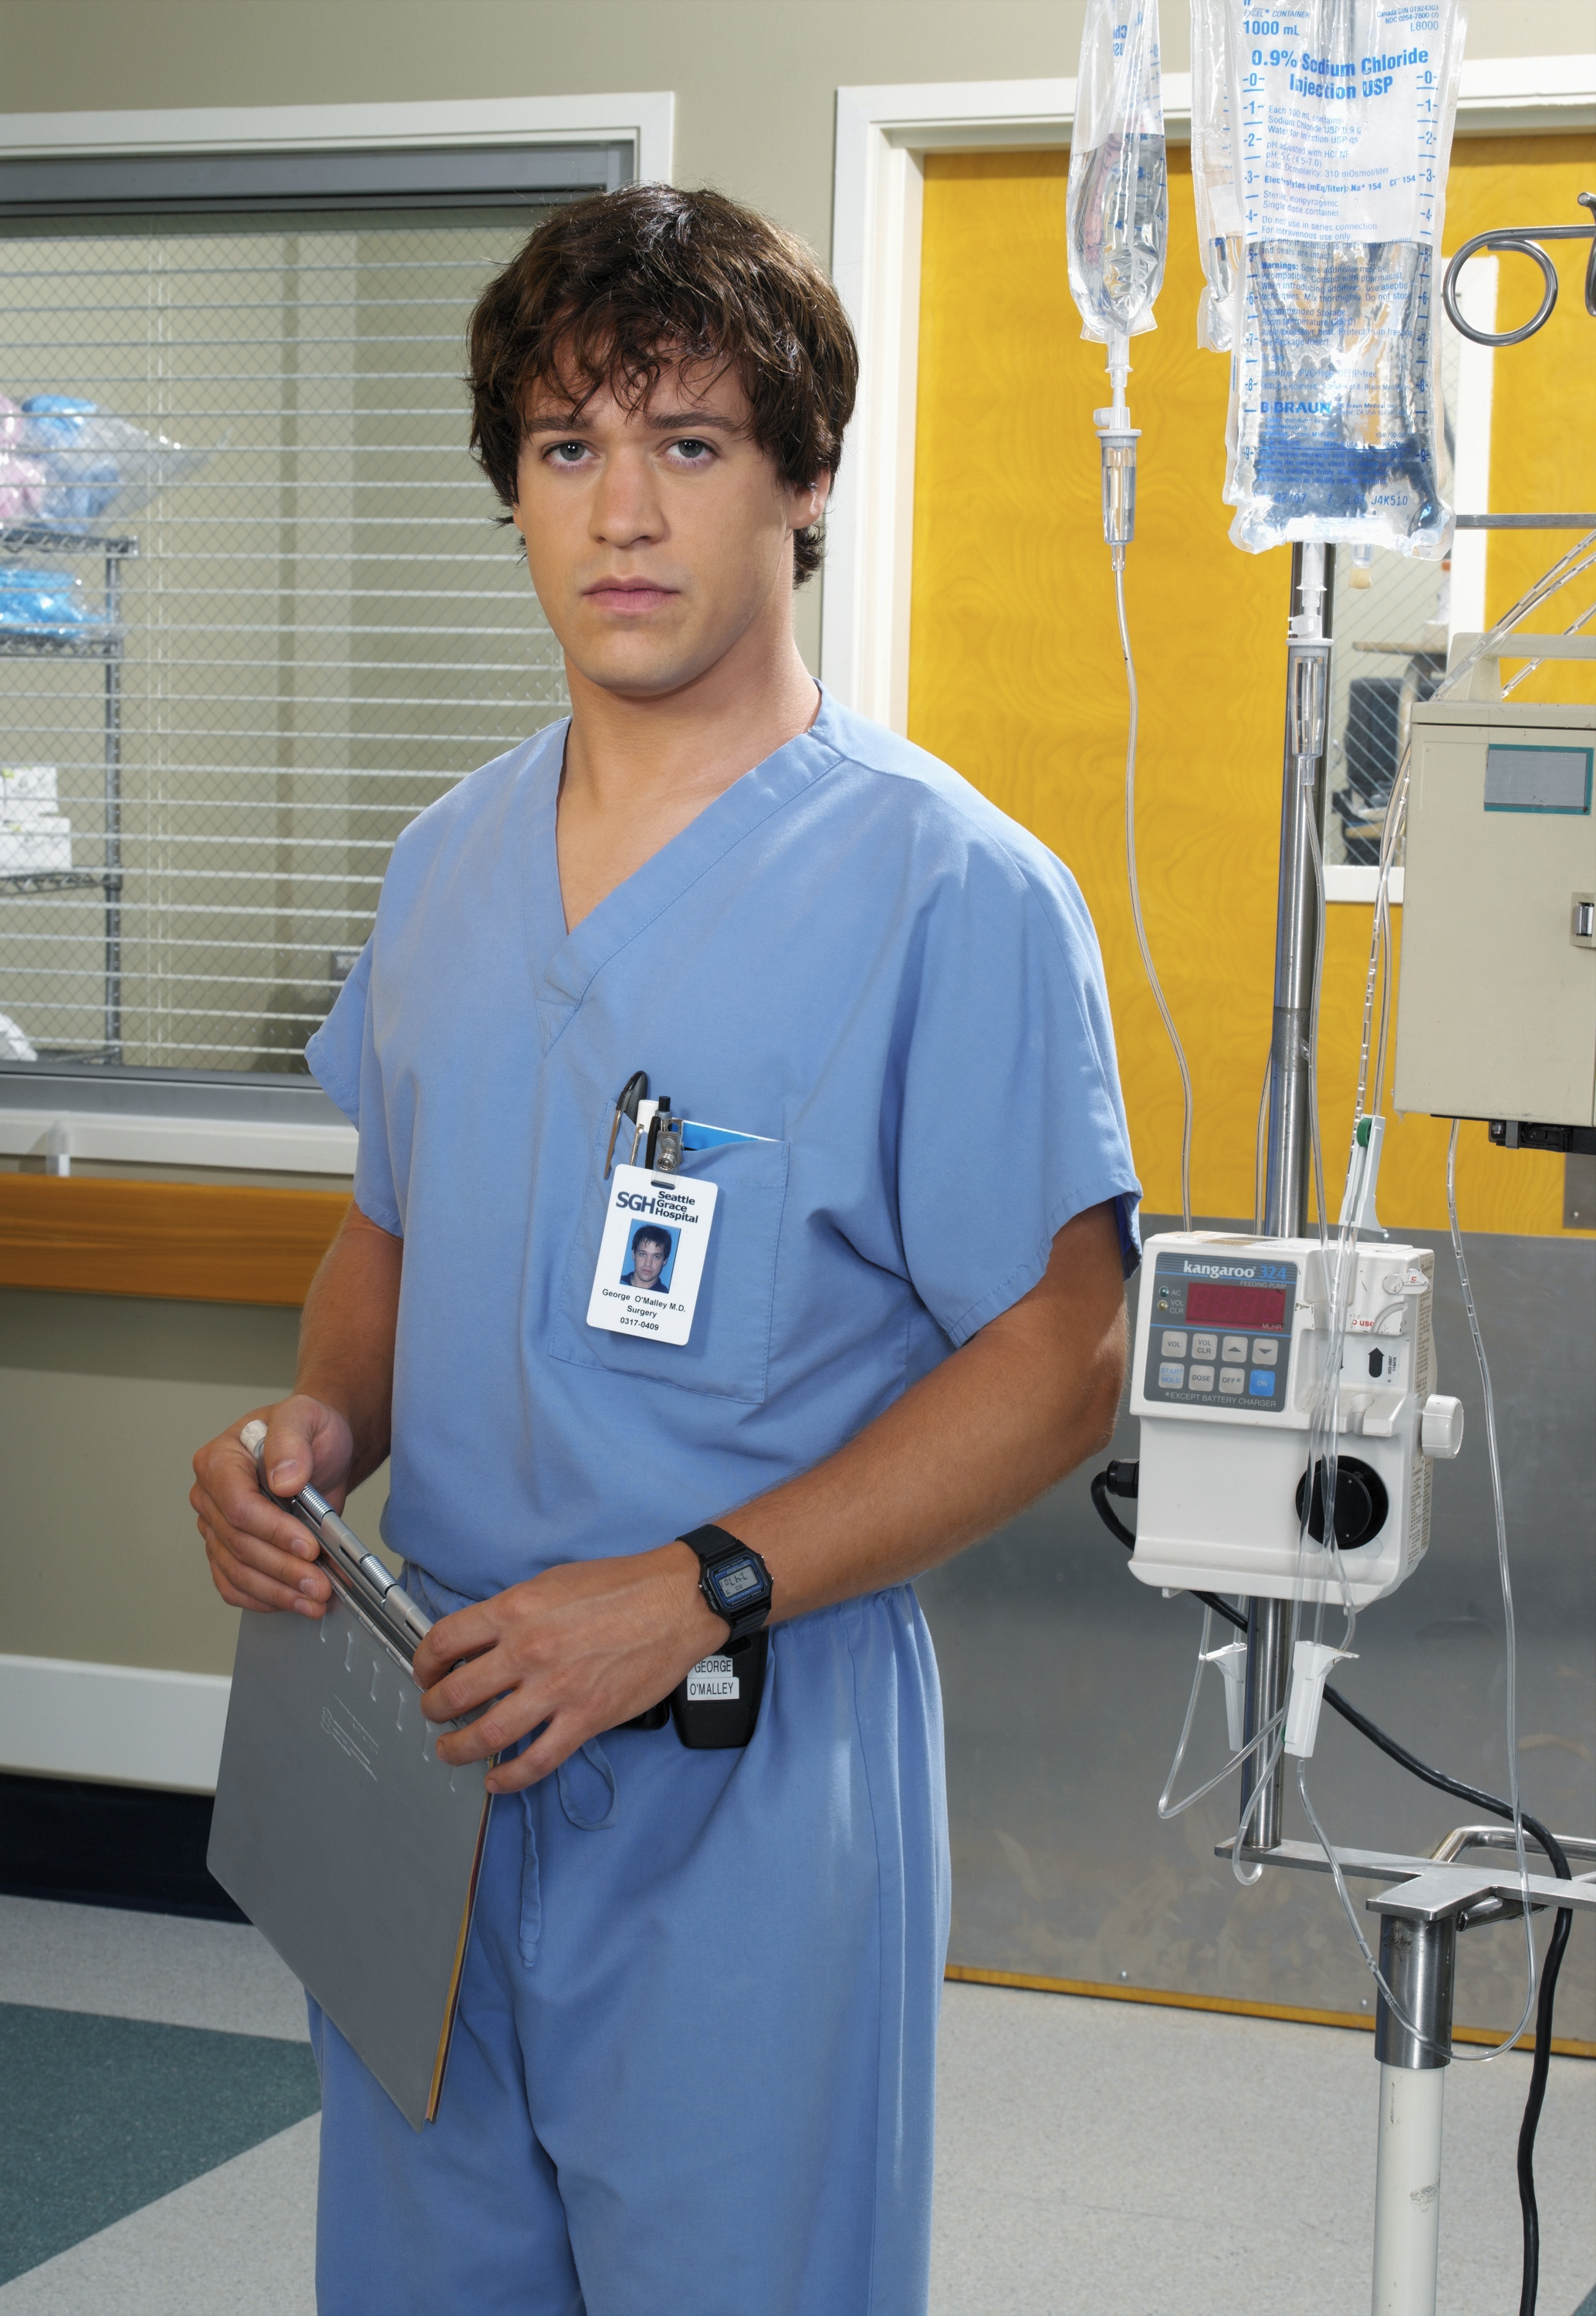 George O Malley Grey's Anatomy Getty Images